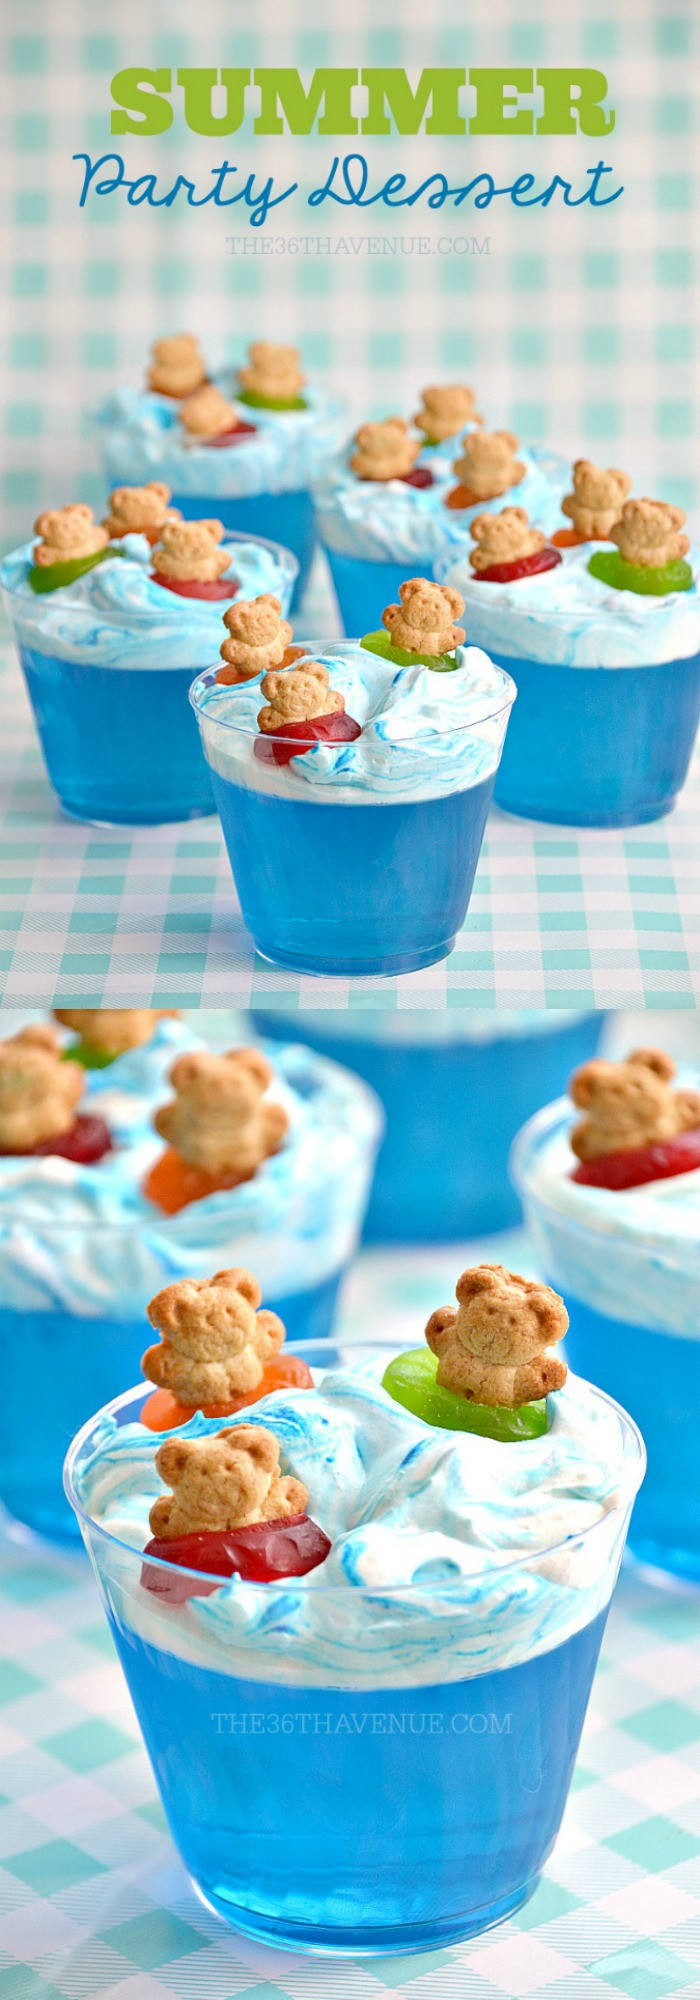 Summertime Party Food Ideas  Summer Dessert – Pool Party Ideas